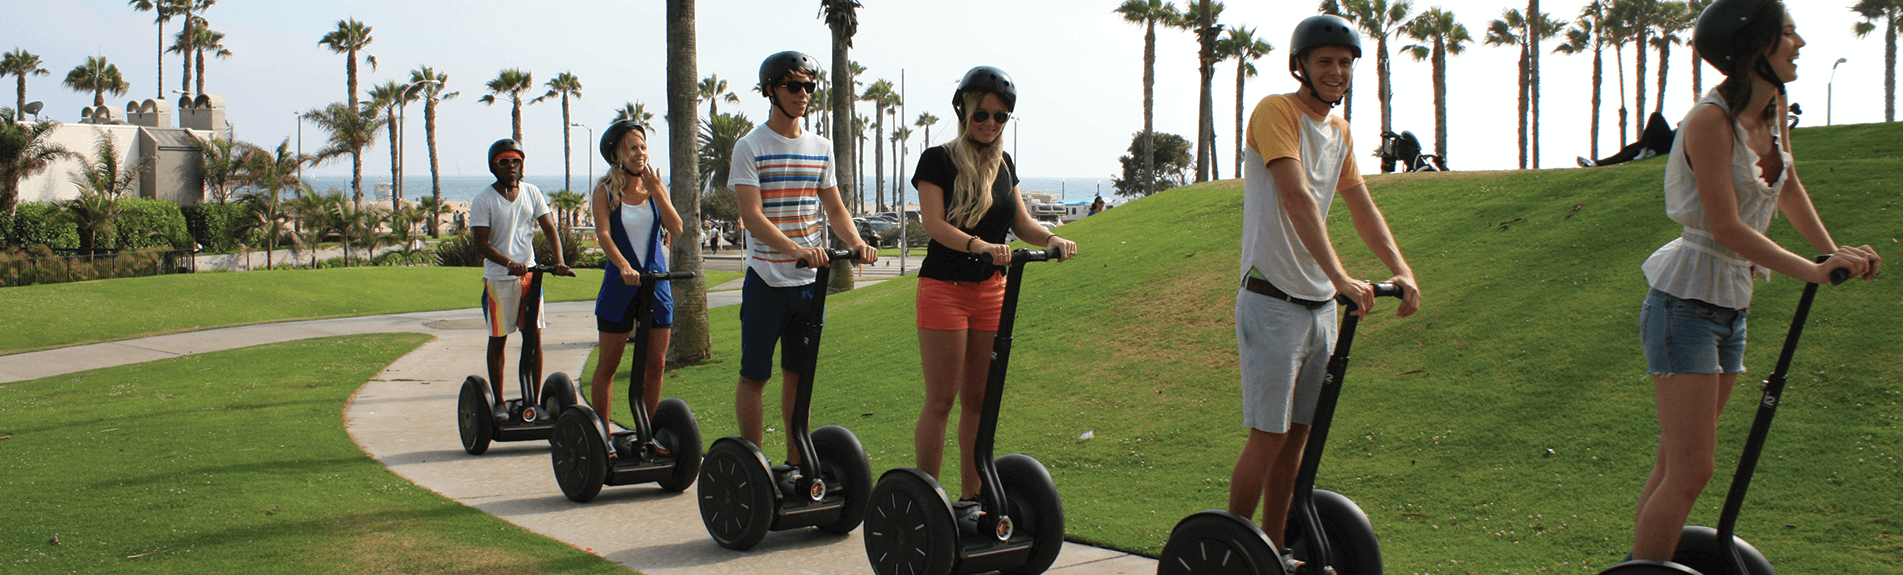 Welcome to Absolutely Chicago Segway Tours! Now at Two locations. Millennium/Maggie Daley Park & North Ave Beach. For a great way to see Chicago's top attractions, try a Chicago Segway® PT tour!